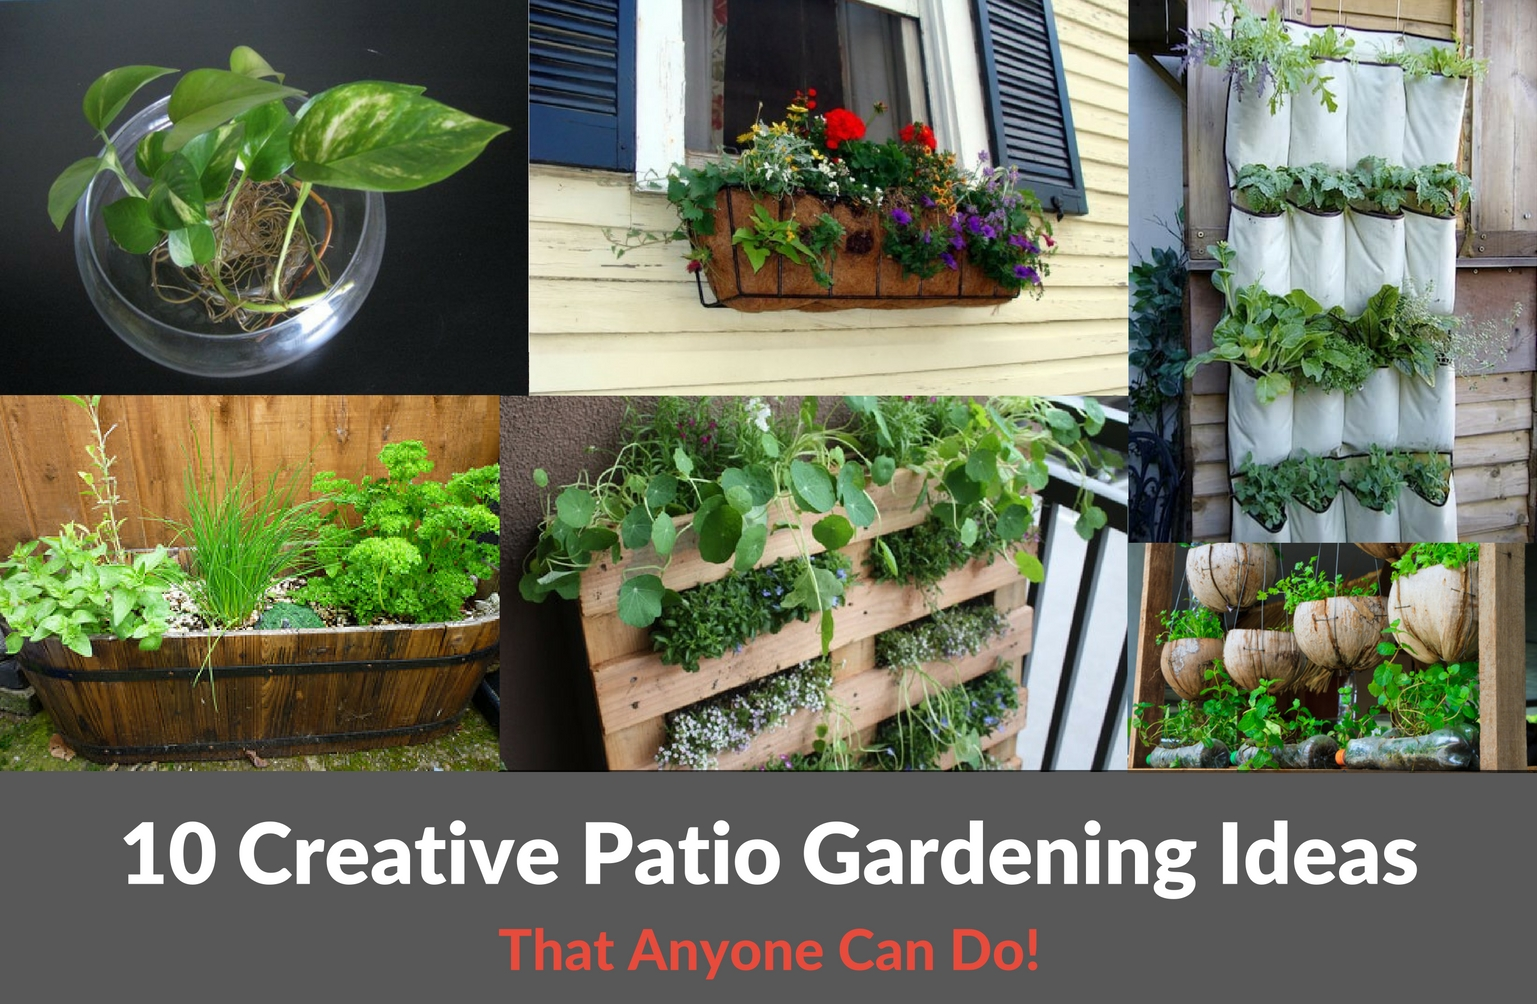 10 Creative Patio Gardening Ideas - 10 Creative Patio Gardening Ideas :: YardYum - Garden Plot Rentals